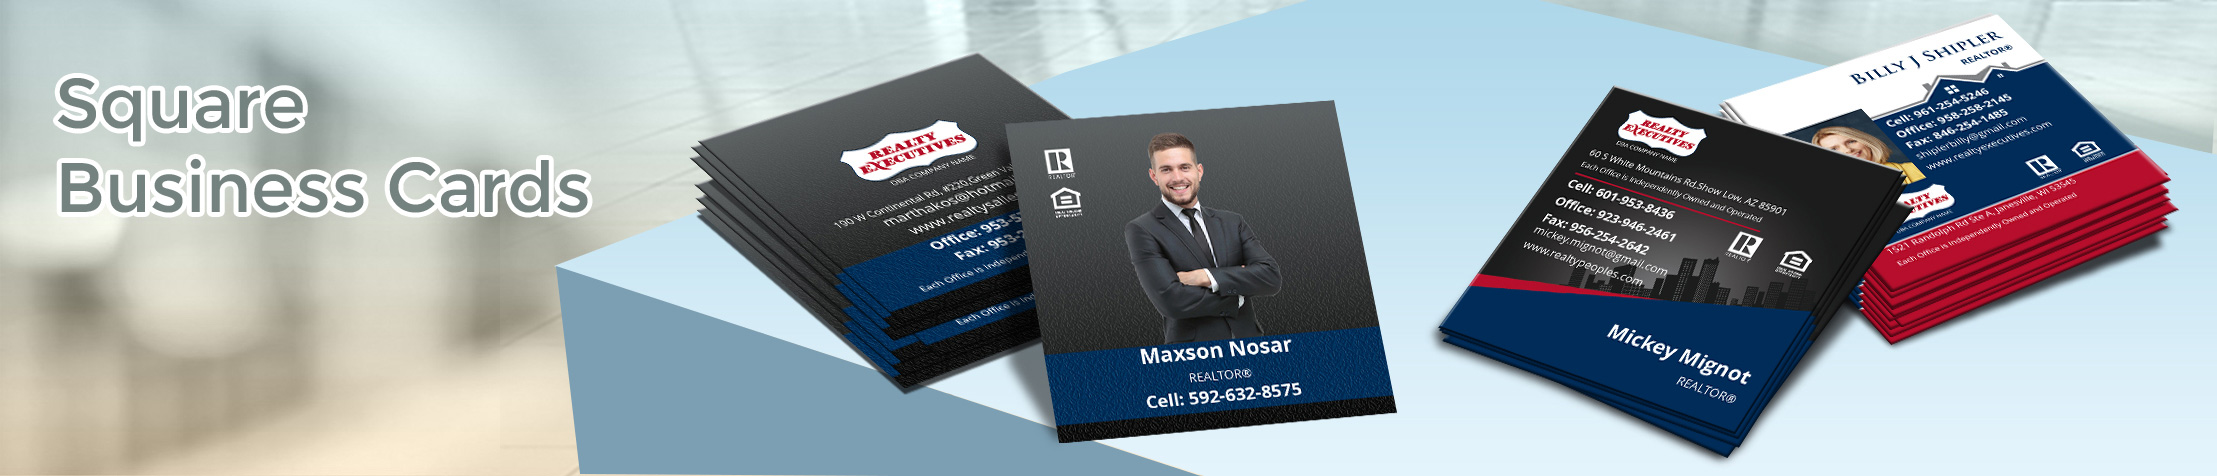 Realty Executives Real Estate Square Business Cards - Realty Executives - Modern, Unique Business Cards for Realtors with a Glossy or Matte Finish | BestPrintBuy.com